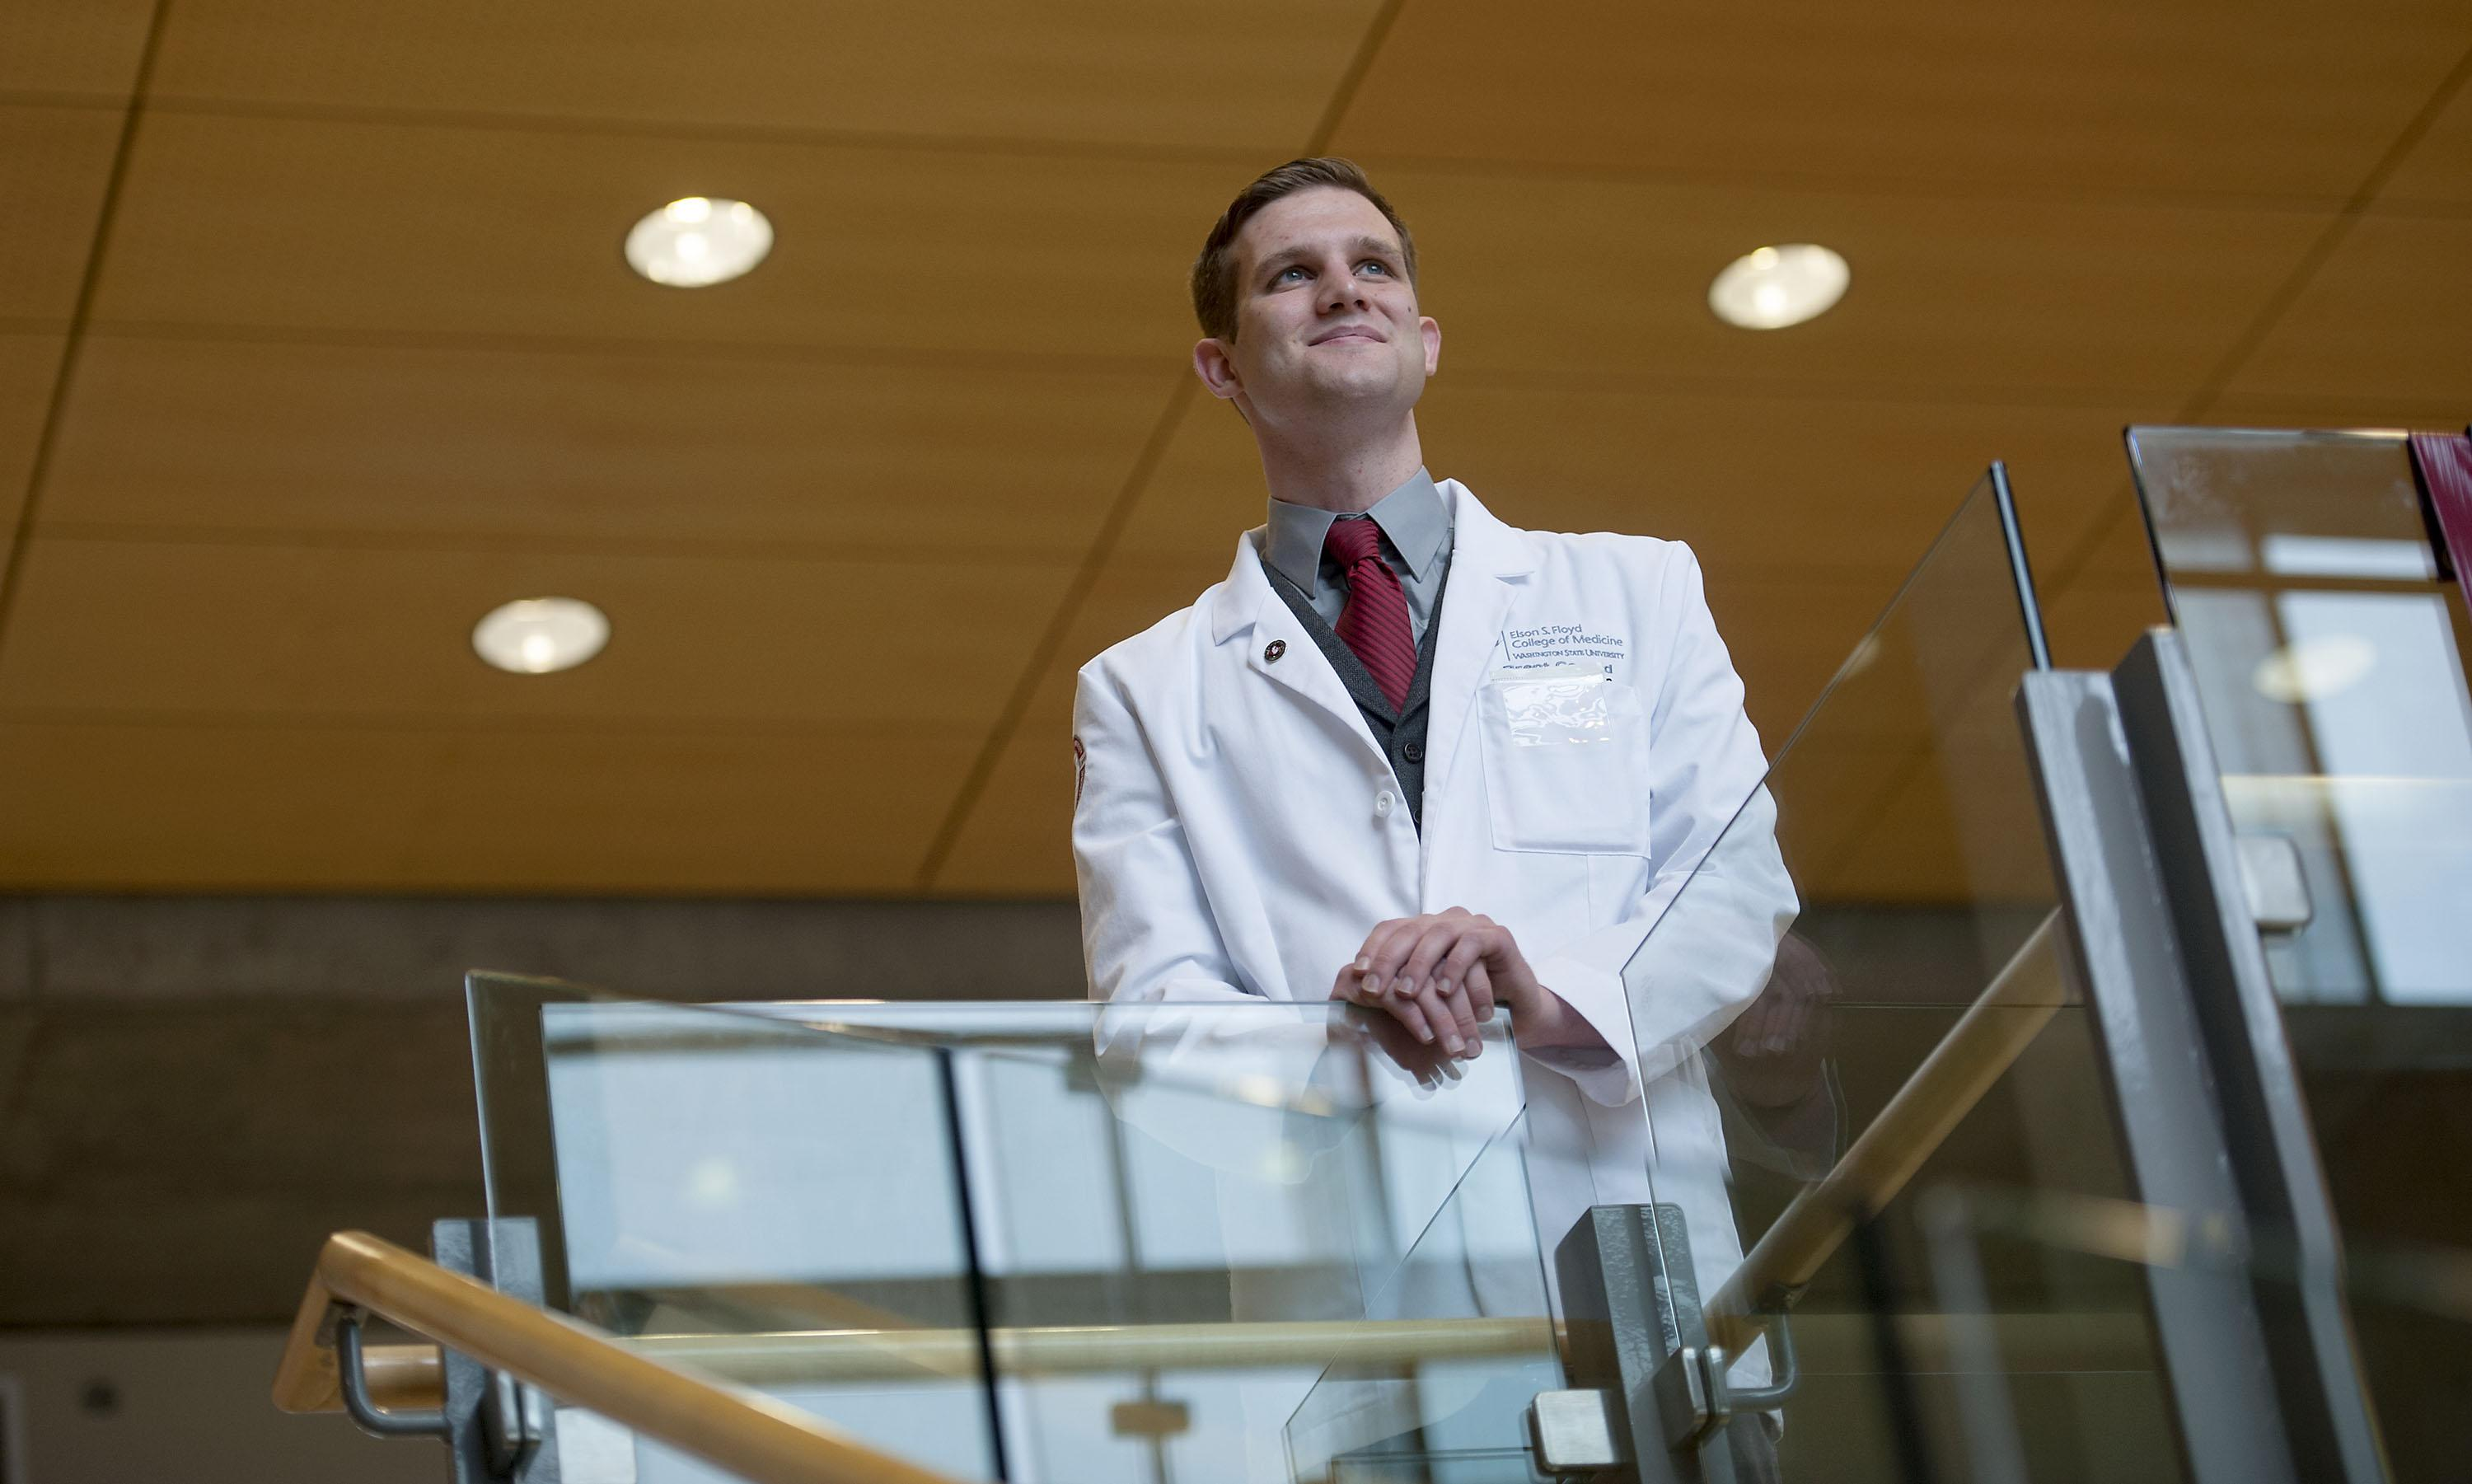 WSU aims to lower med school debt to help new doctors | The